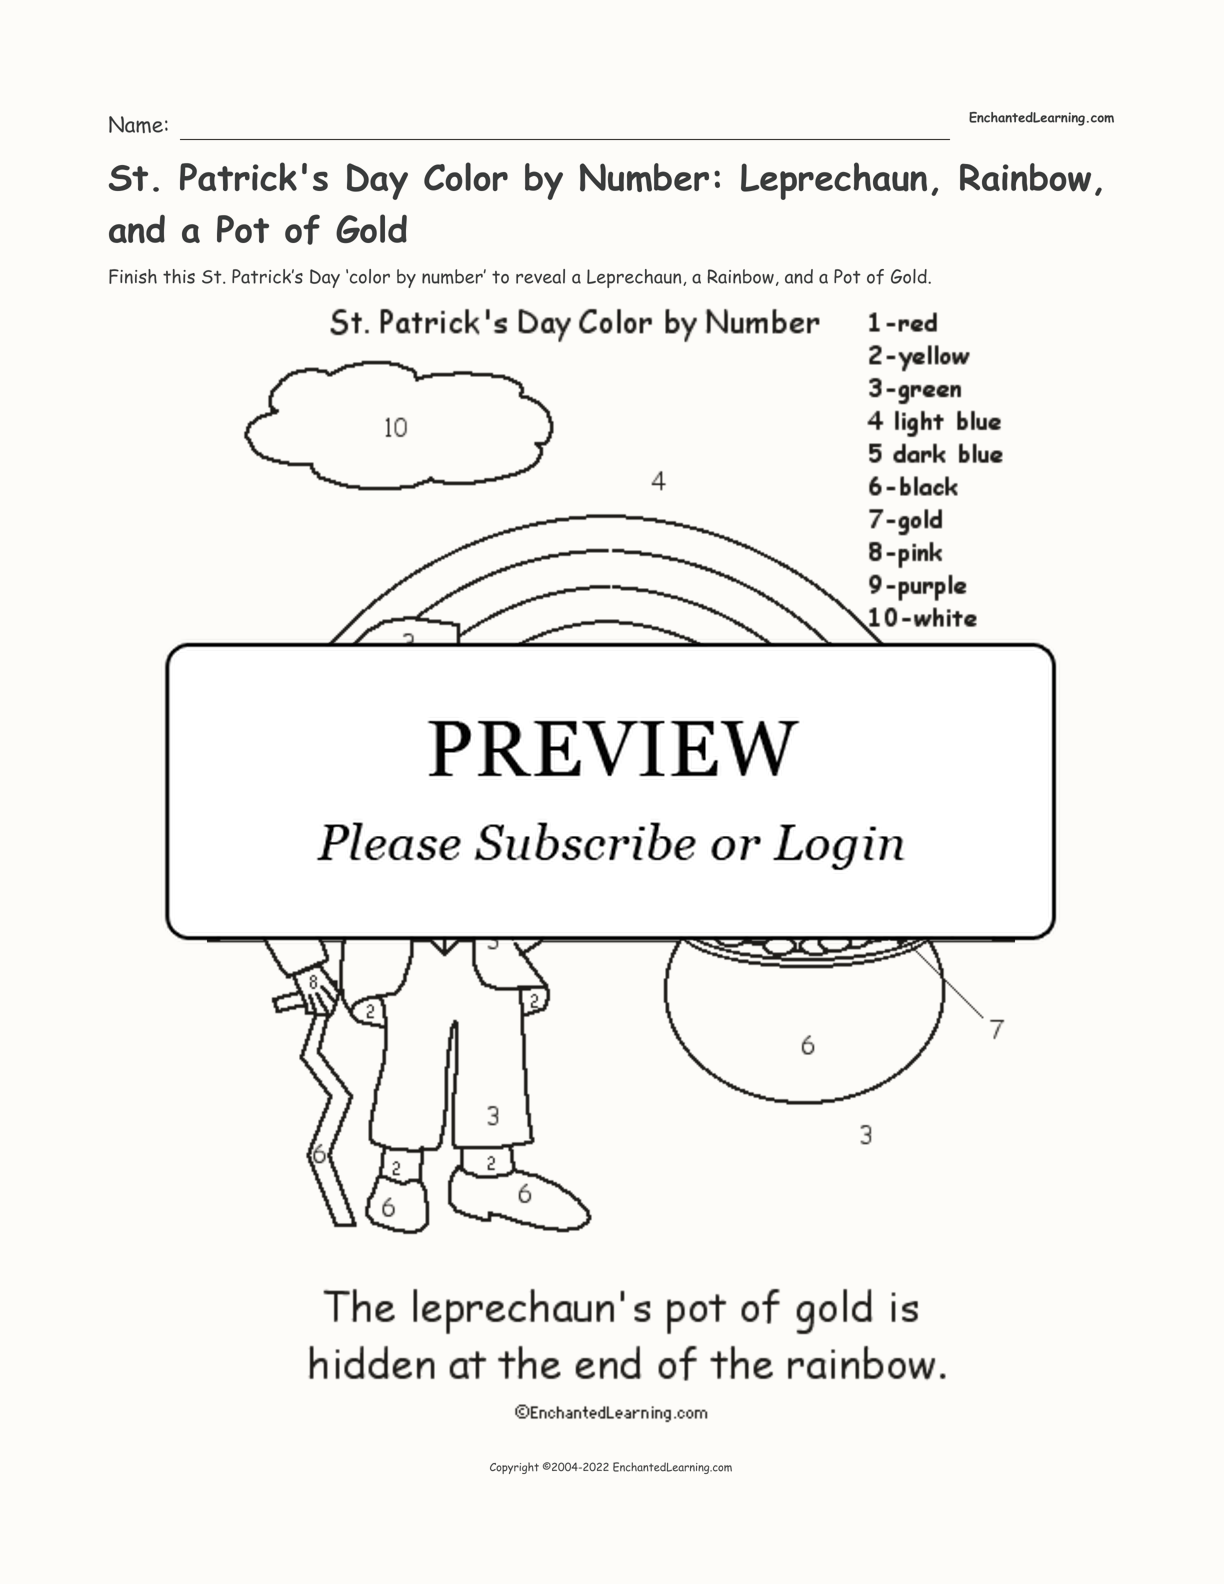 St. Patrick's Day Color by Number: Leprechaun, Rainbow, and a Pot of Gold interactive printout page 1